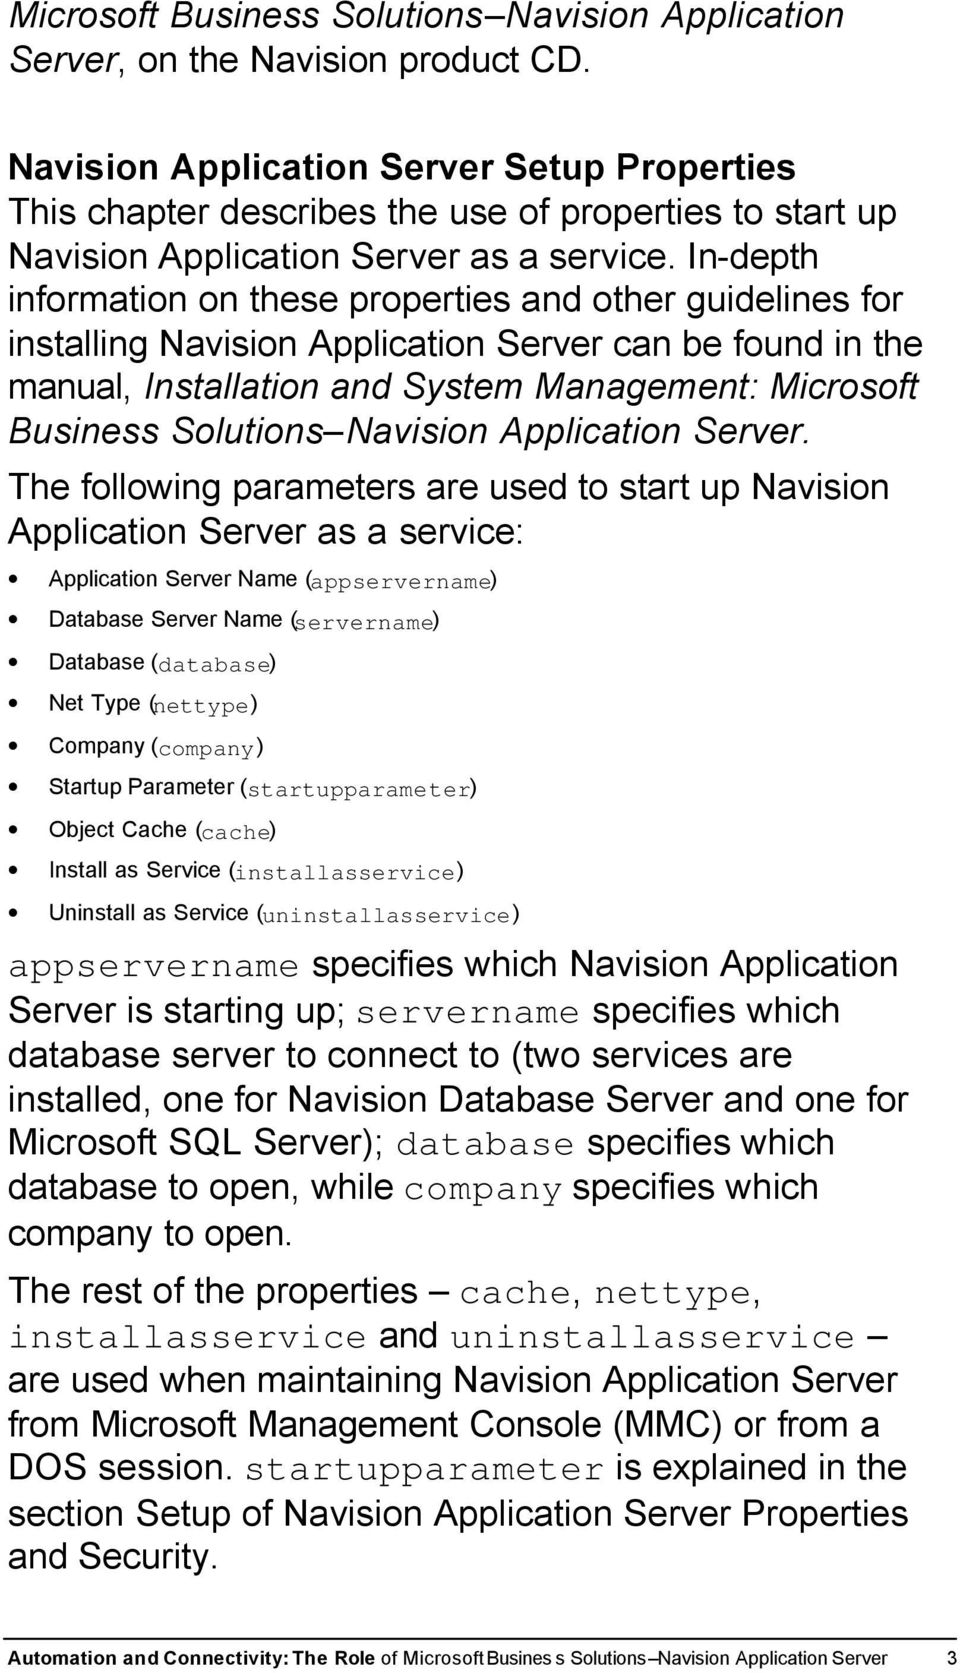 In-depth information on these properties and other guidelines for installing Navision Application Server can be found in the manual, Installation and System Management: Microsoft Business Solutions